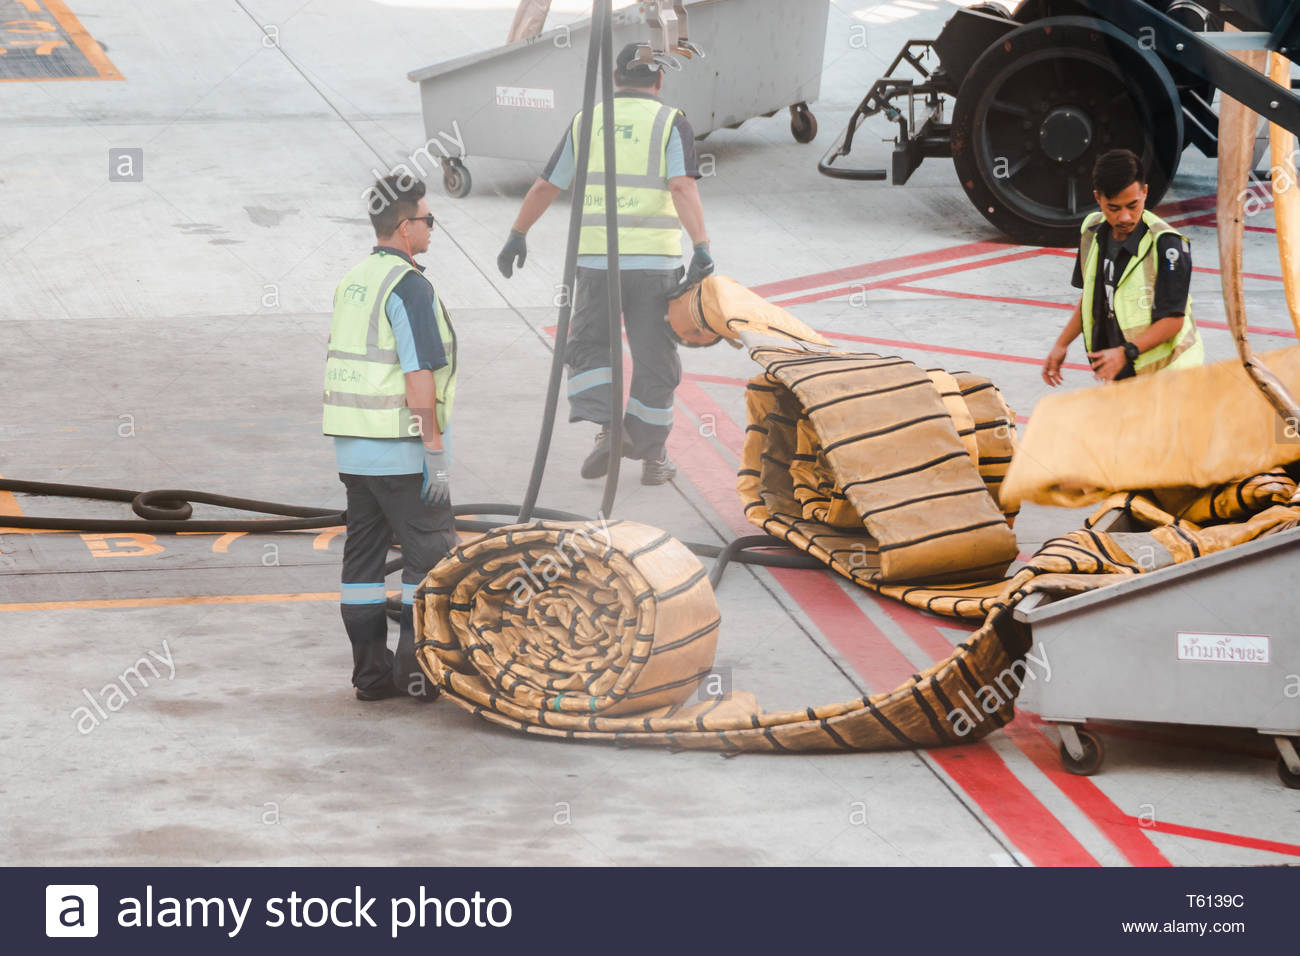 asian-ground-crew-carrying-yellow-air-conditioning-ventilation-pipe-to-be-connected-into-a-parking-airplane-to-cool-down-the-cabin-T6139C.jpg